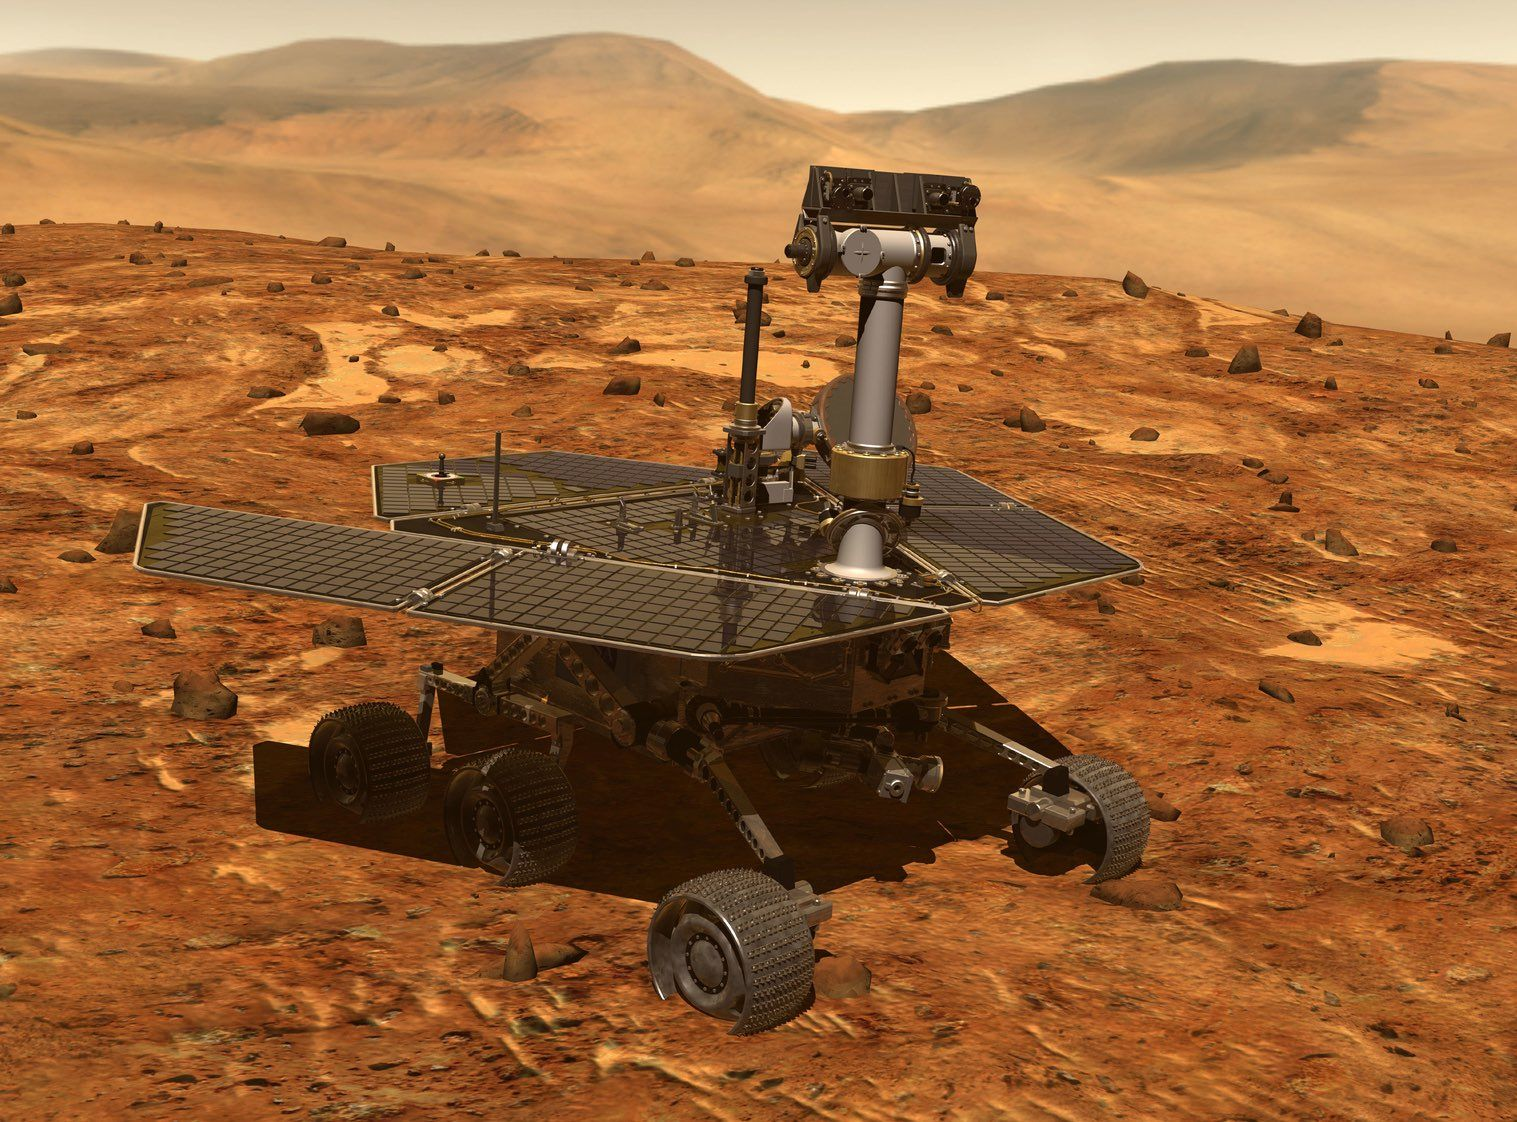 Spirit and Opportunity landed in 2004, and their mission was scheduled to last 90 days. Spirit survived for six years, and Opportunity operated until June 2018, when NASA lost communication with the rover after a severe Mars-wide dust storm. NASA official